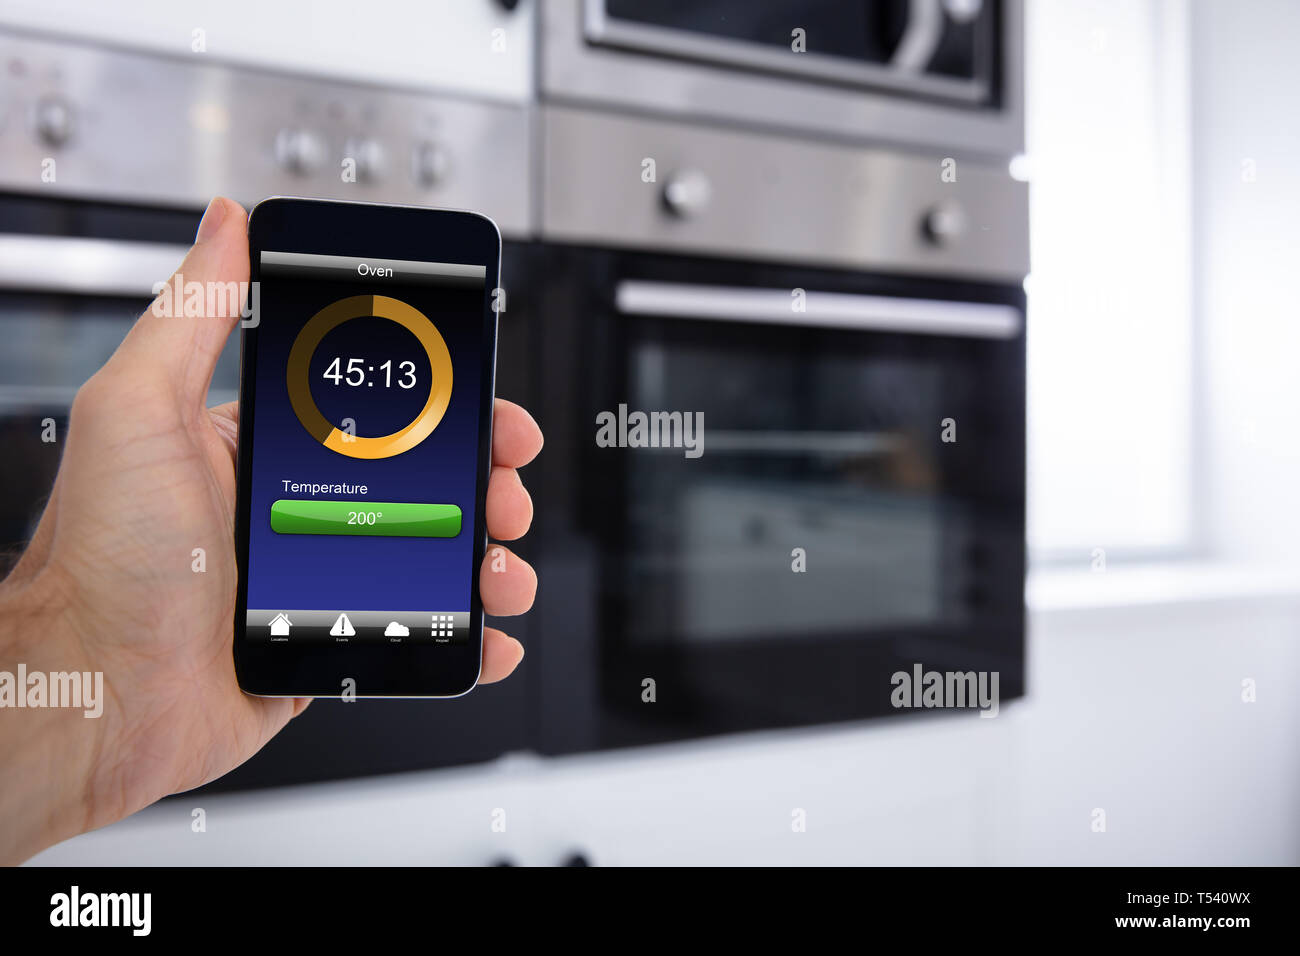 Close-up Of A Person Hands Operating Oven Application With Cellphone - Stock Image